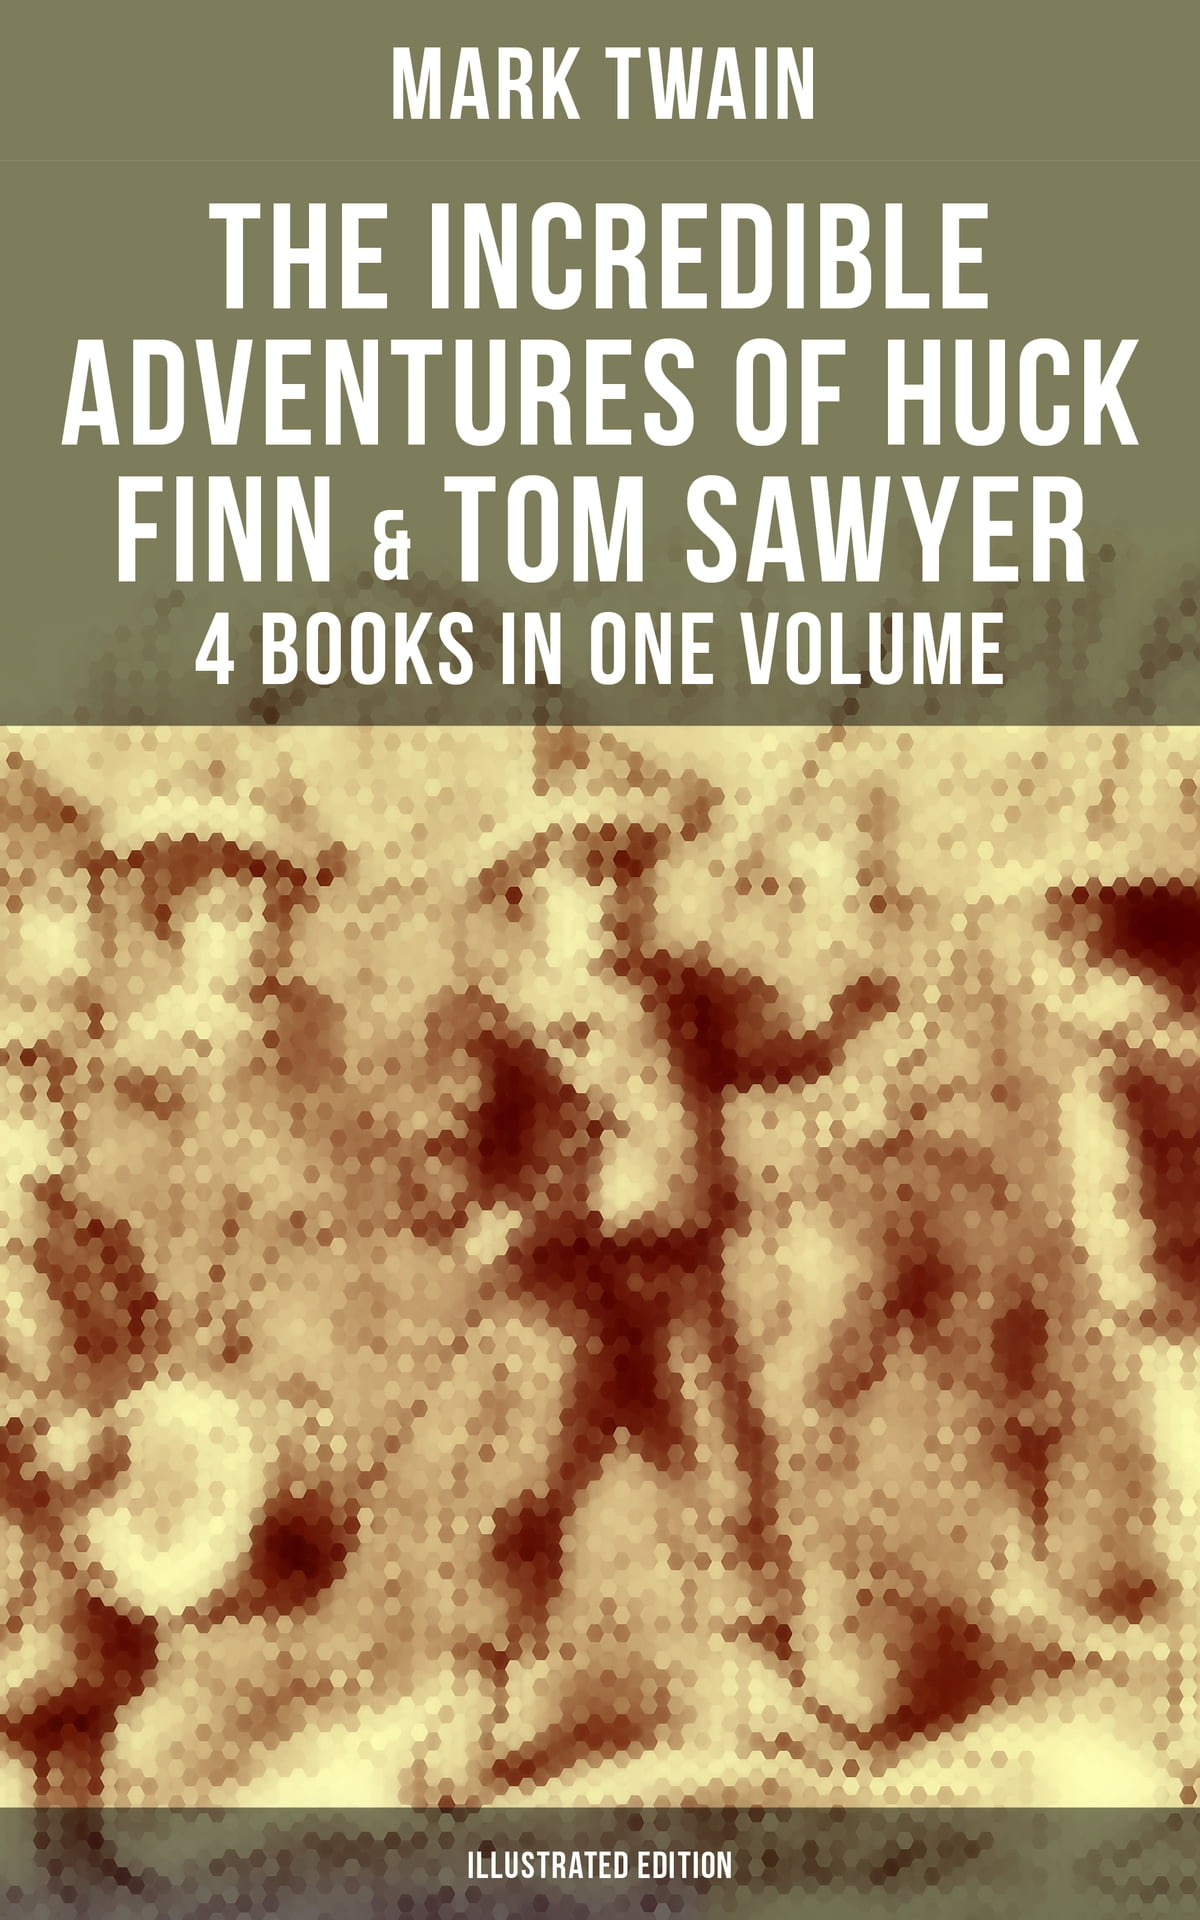 Tom Sawyer And Huckleberry Finn Book